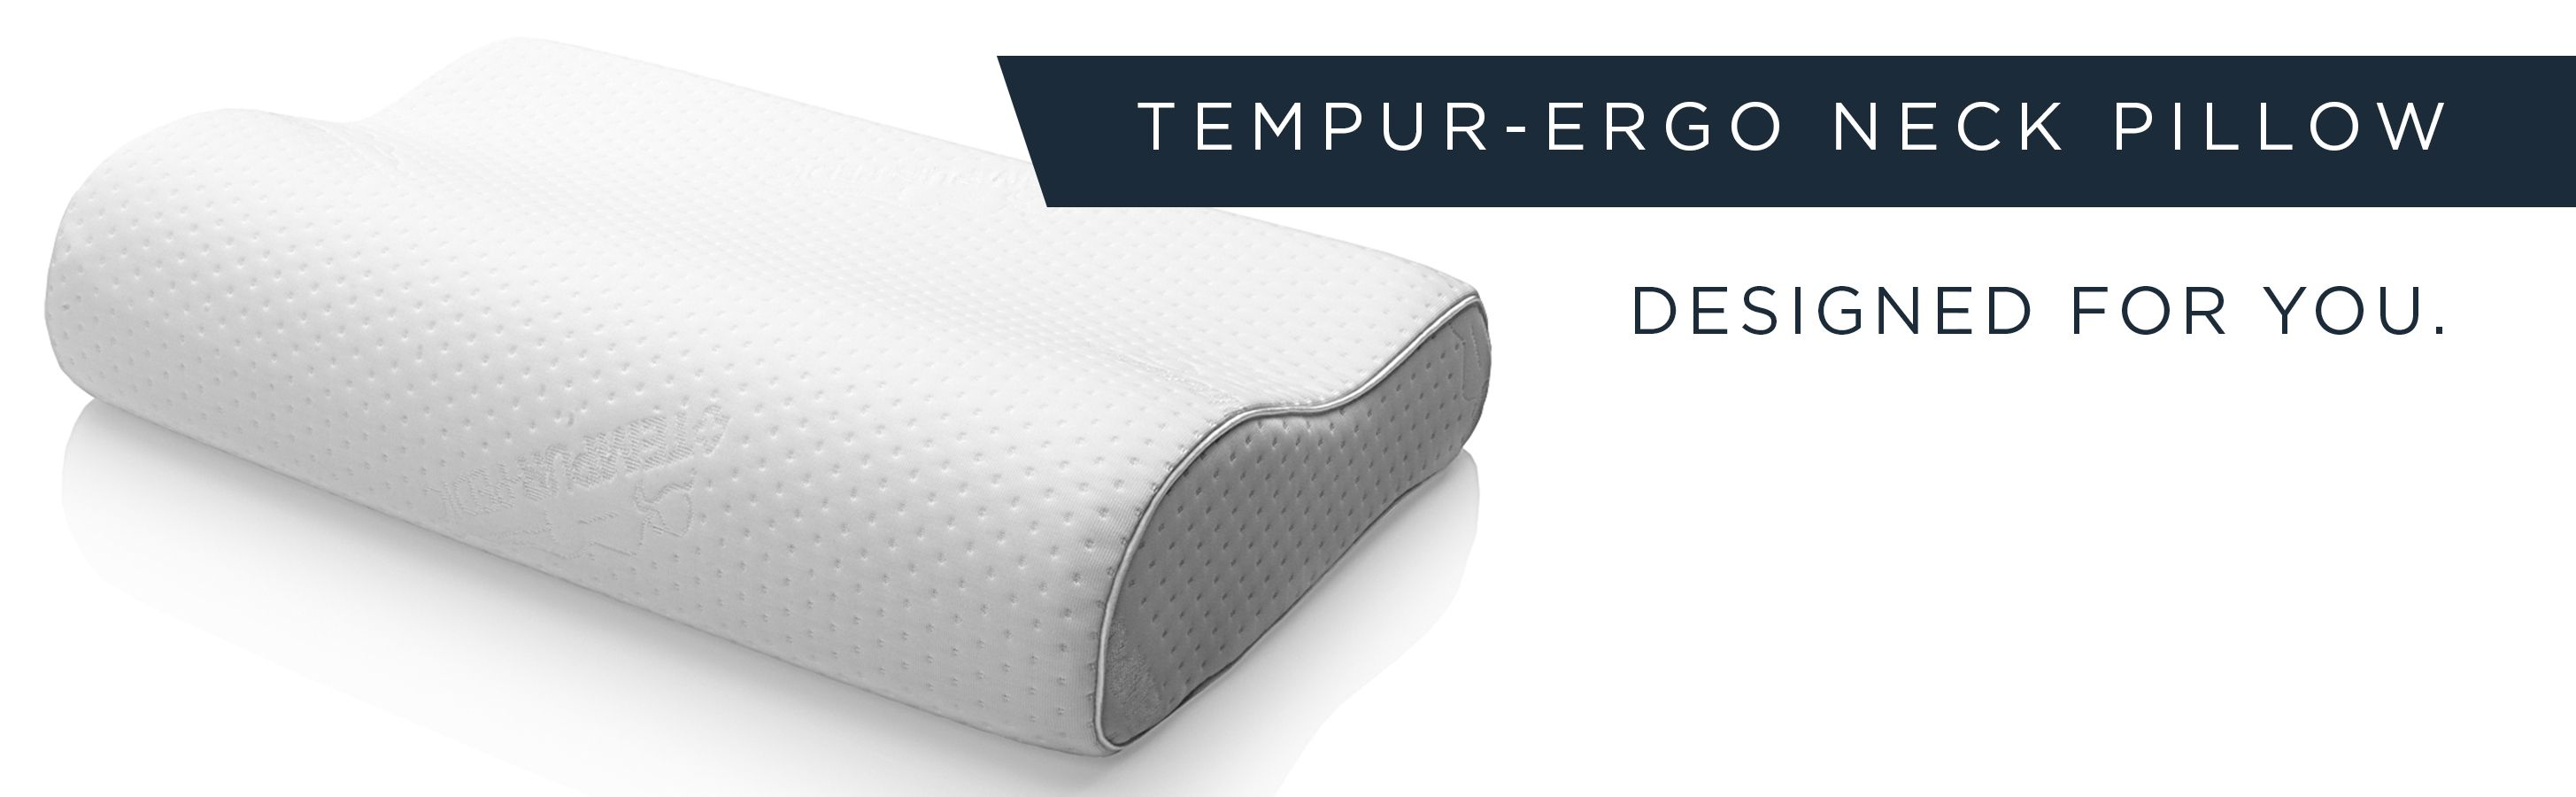 How To Use Tempurpedic Neck Pillow Tempur Pedic Tempur Neck Pillow Small